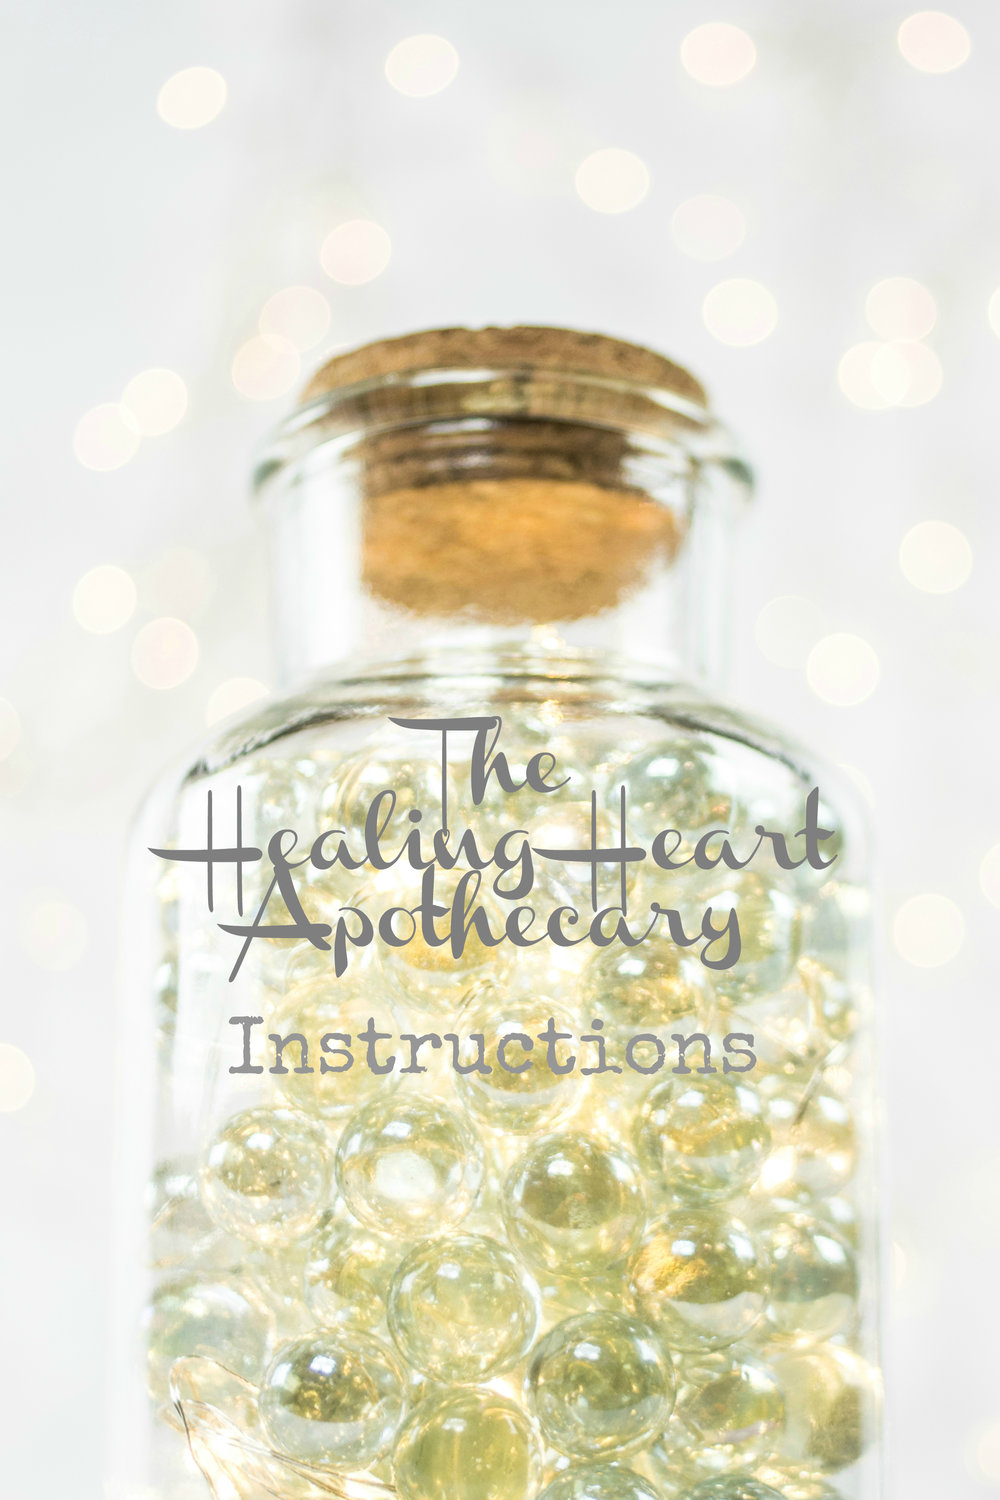 Apothecary Instructions.jpg